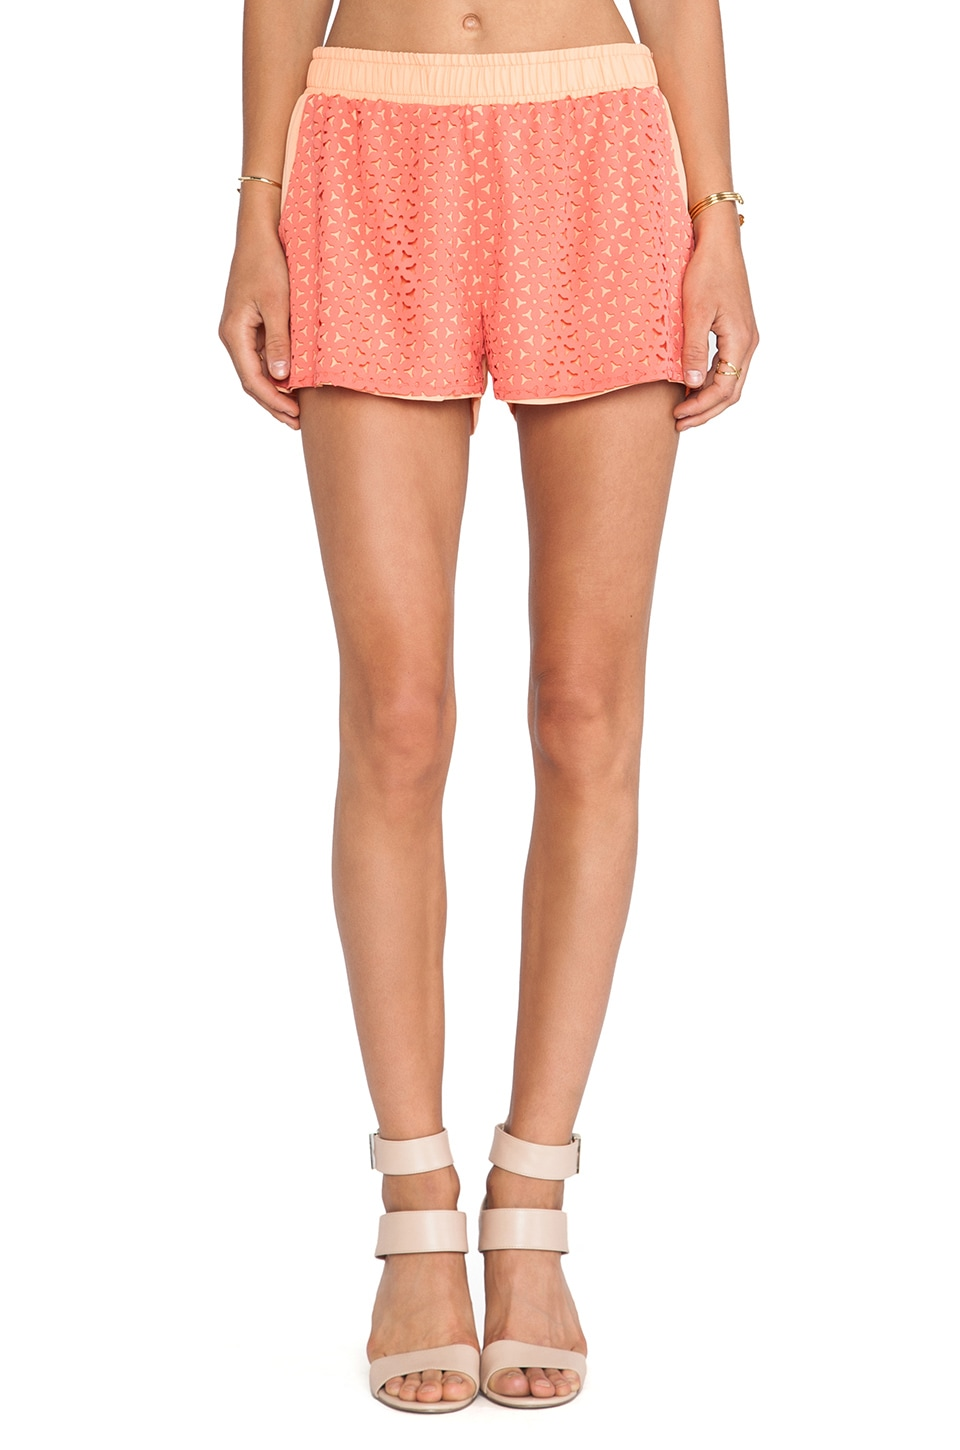 J.O.A. Floral Cut-Out Shorts in Coral